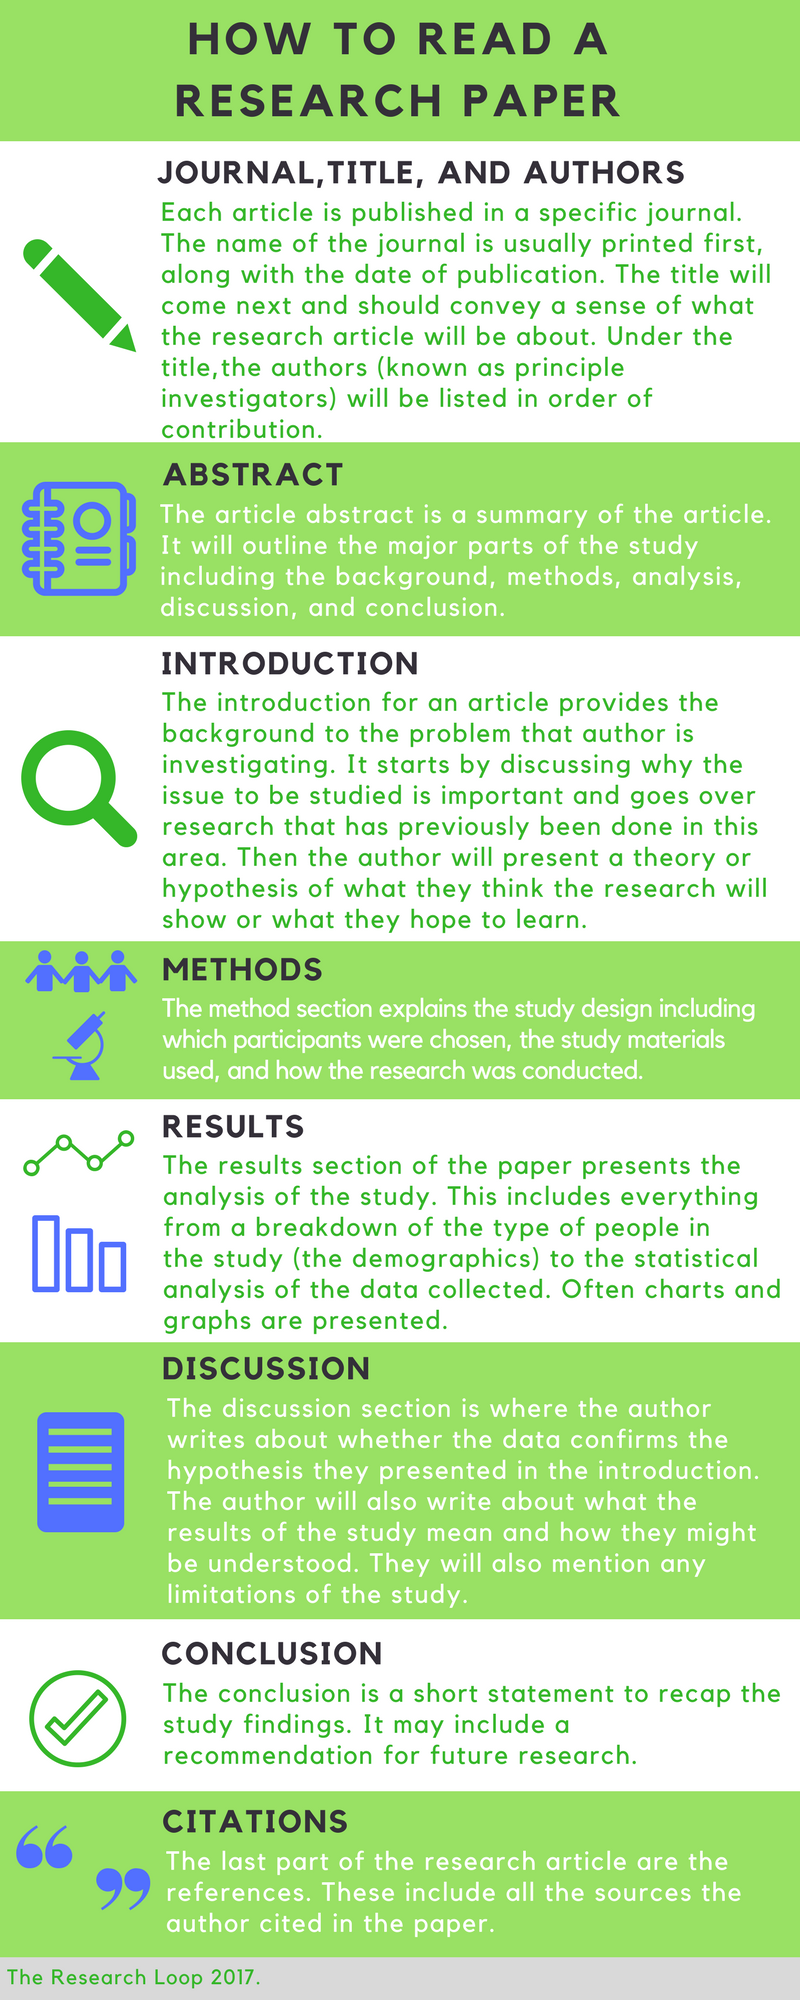 include discussion section research paper